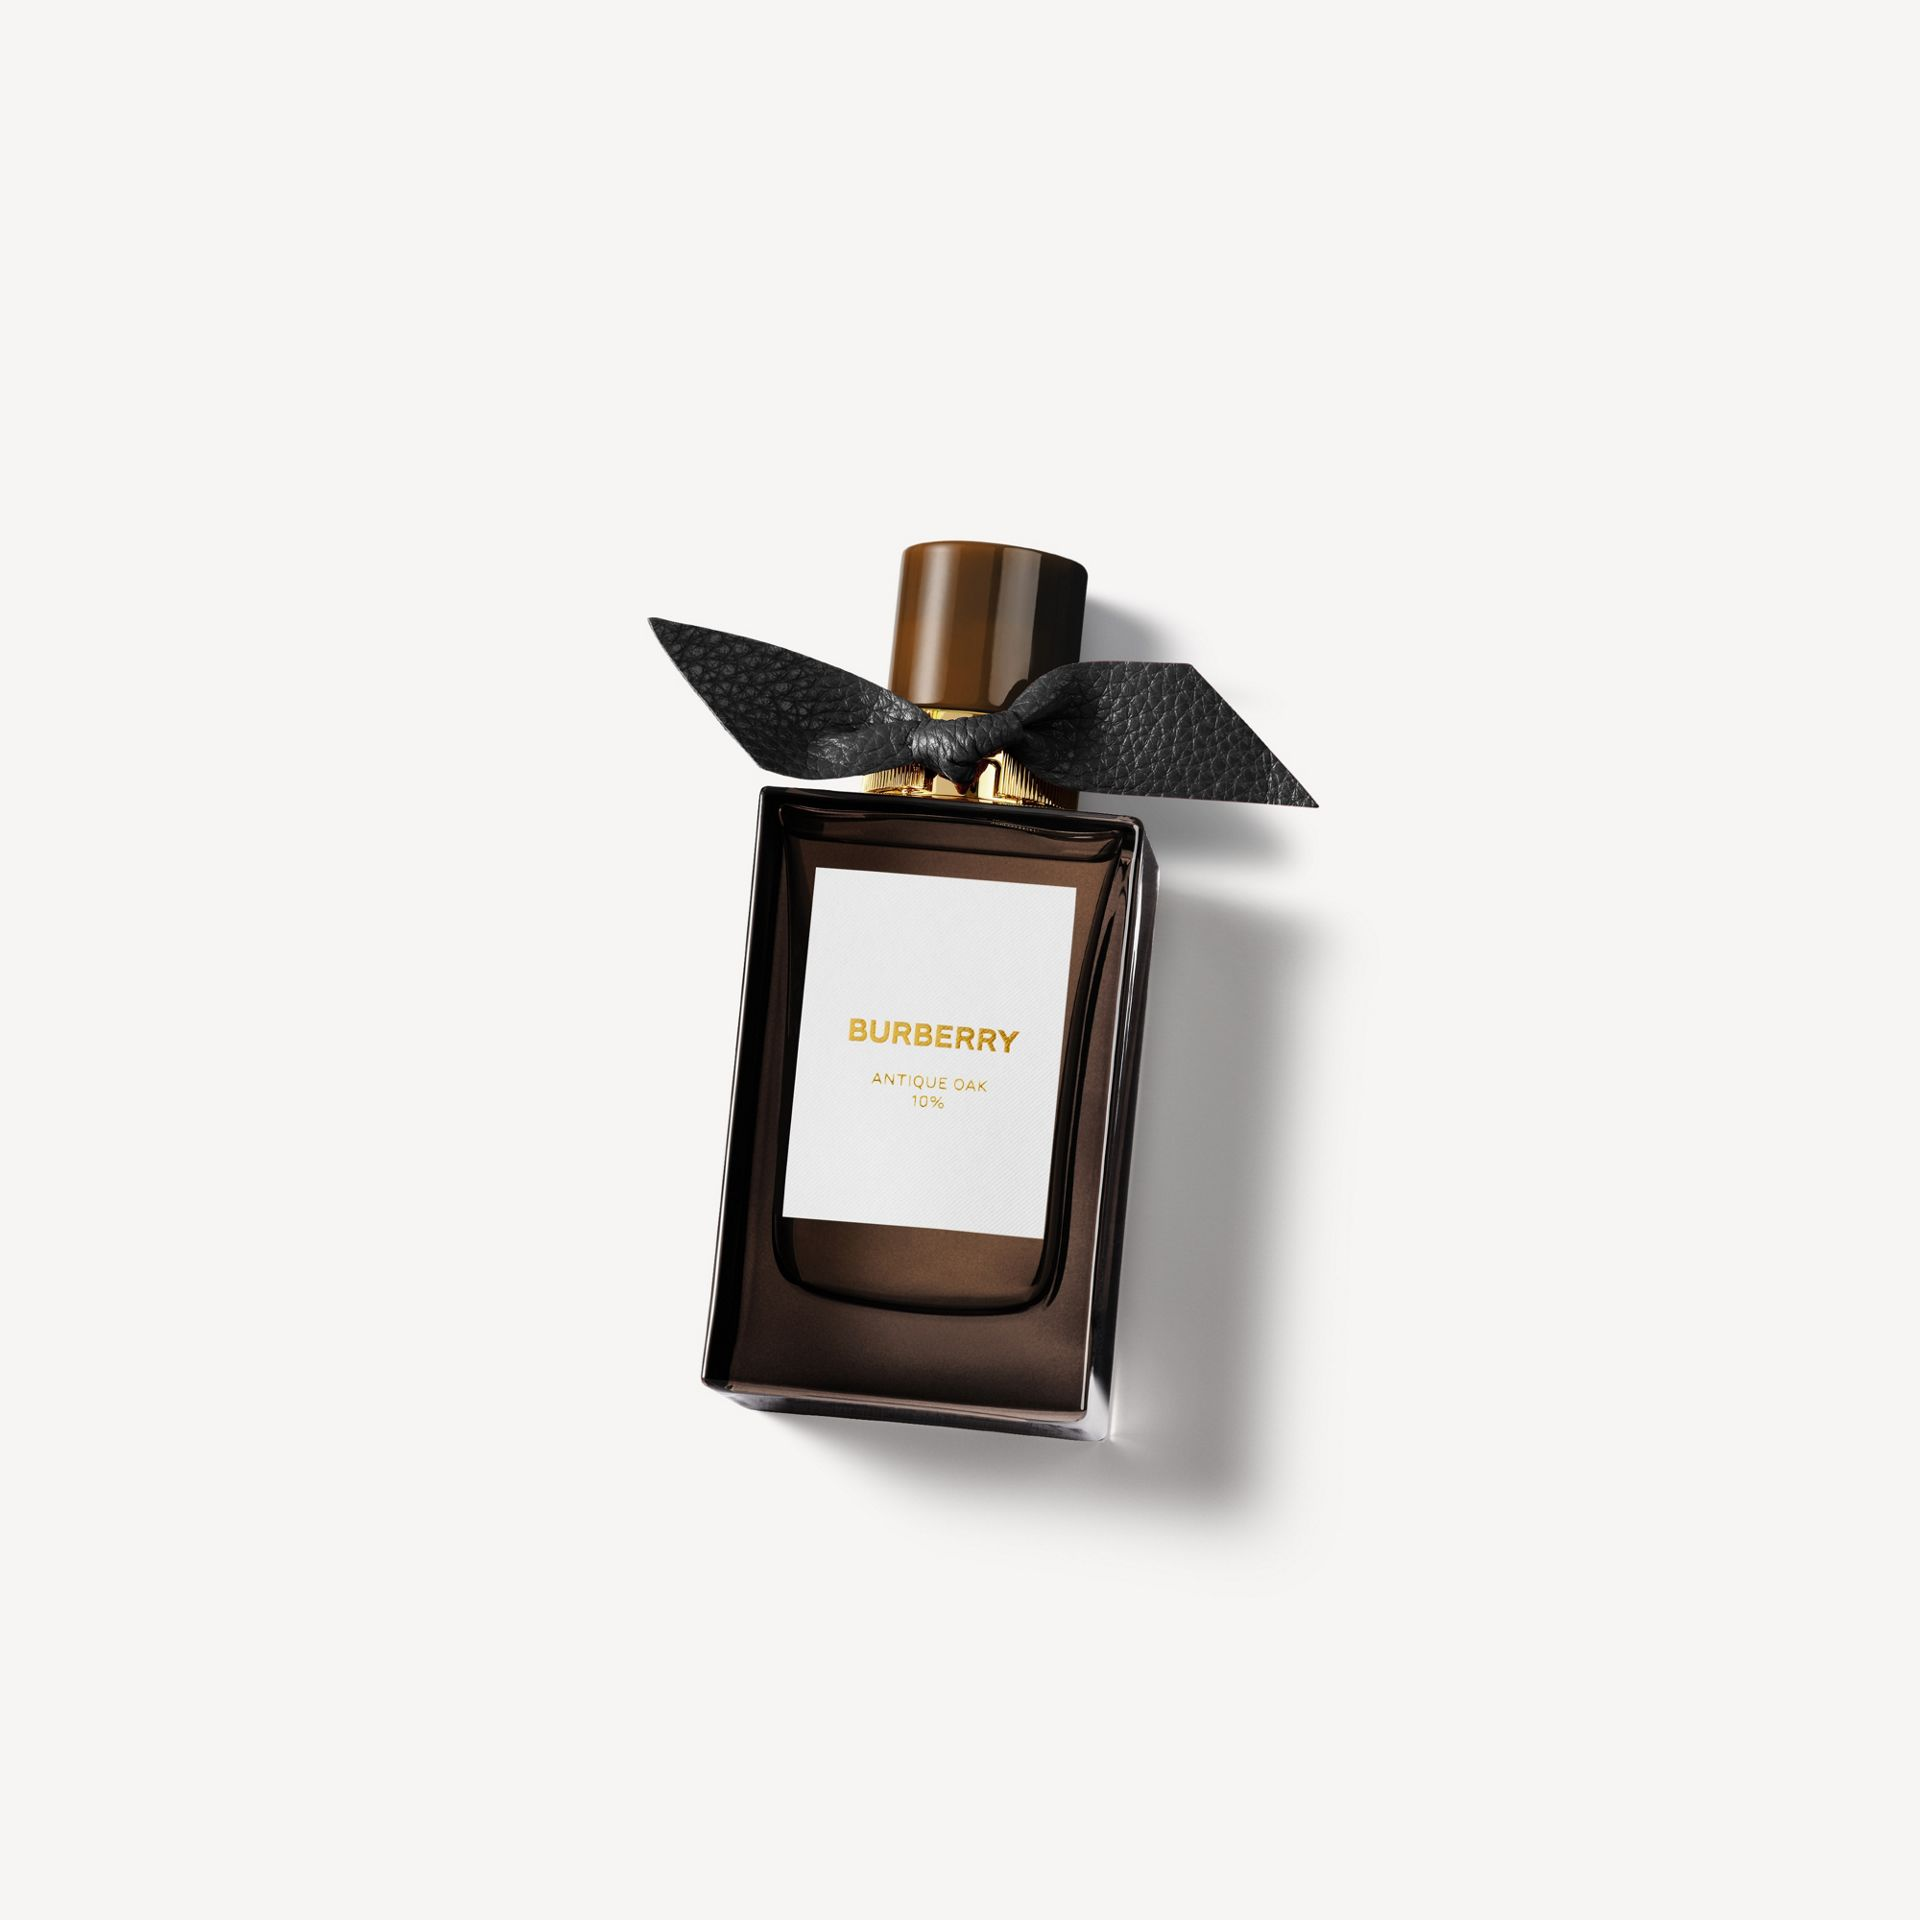 Burberry Signatures Antique Oak Eau de Parfum 100ml | Burberry Australia - gallery image 0